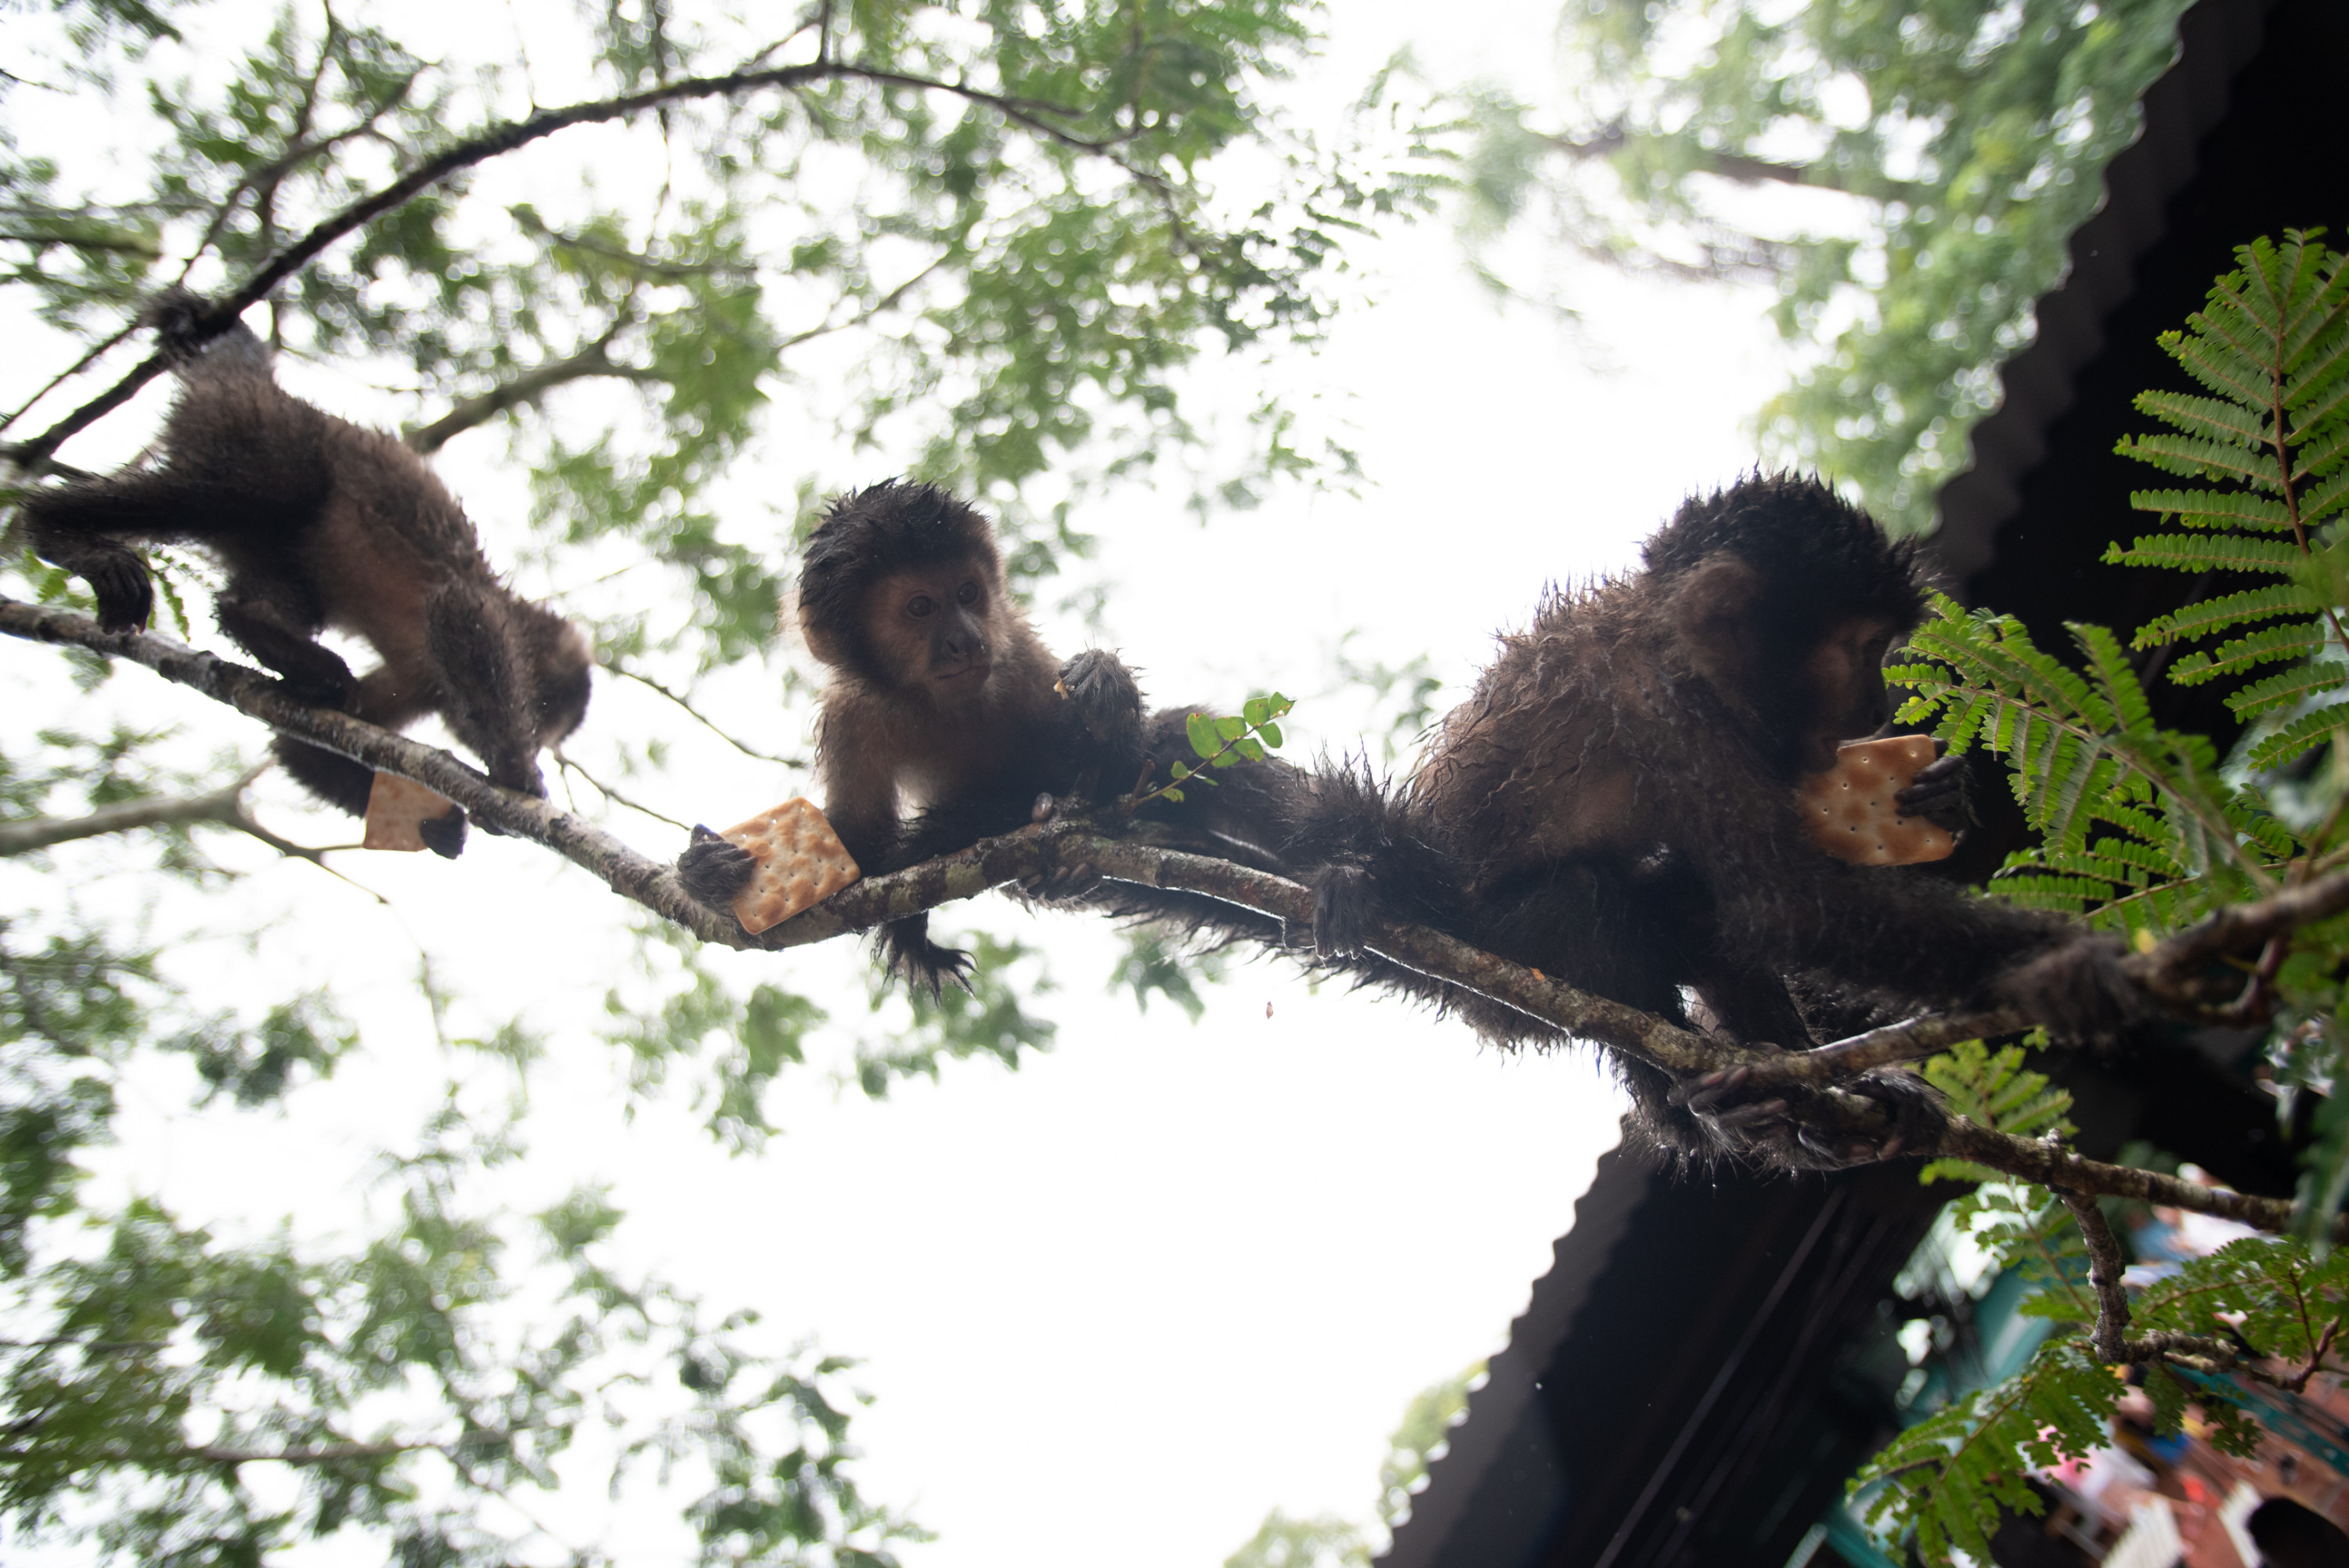 A trio of monkeys dangling in a tree enjoy crackers that were fed to them by tourists in Iguazú National Park.